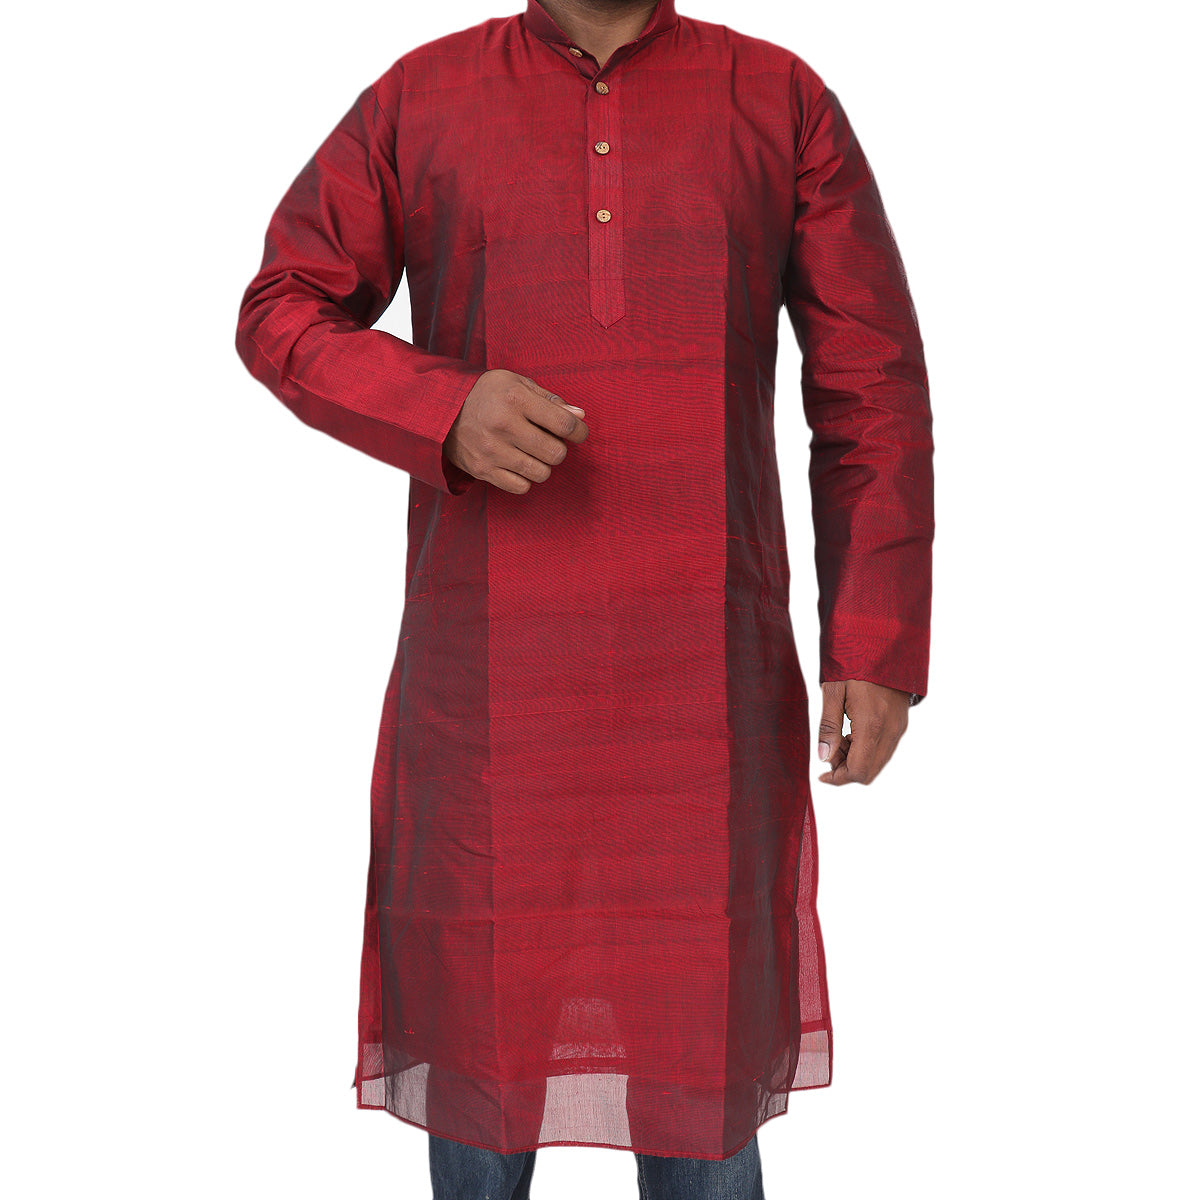 Mens Long Silk Cotton Kurta Maroon for Rs.Rs. 2150.00 | Mens Kurta by Prashanti Sarees